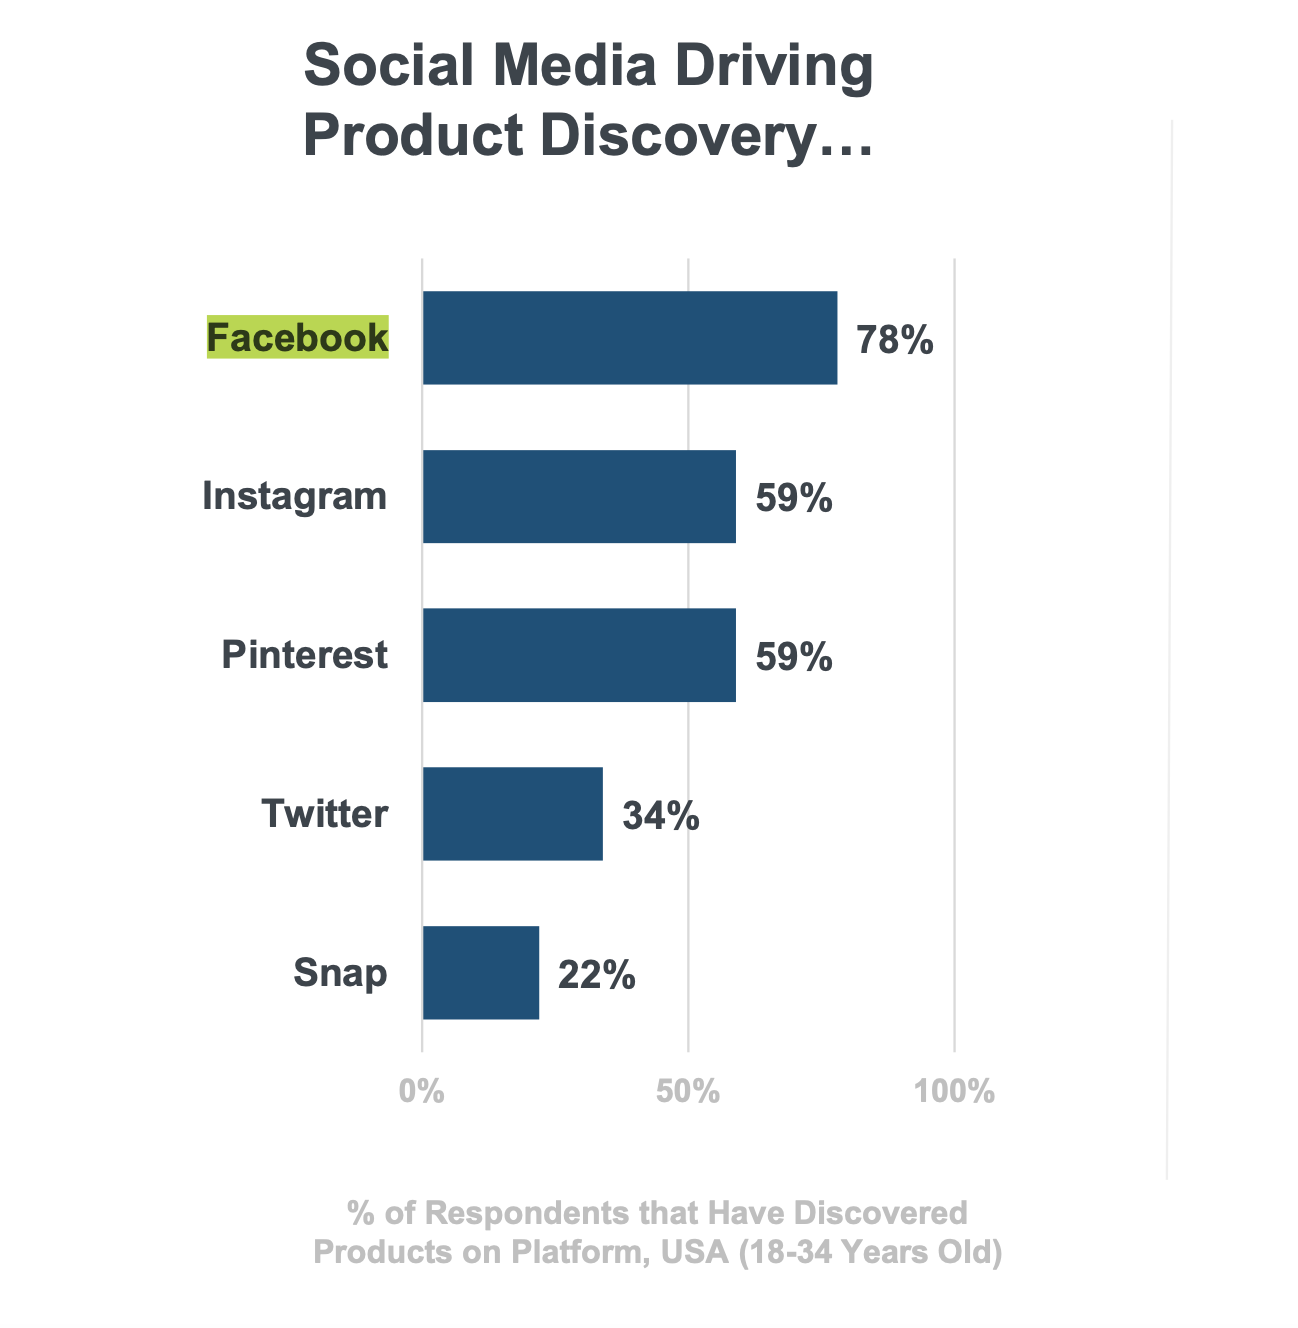 A graph comparing social media platforms ability to generate product discovery opportunities